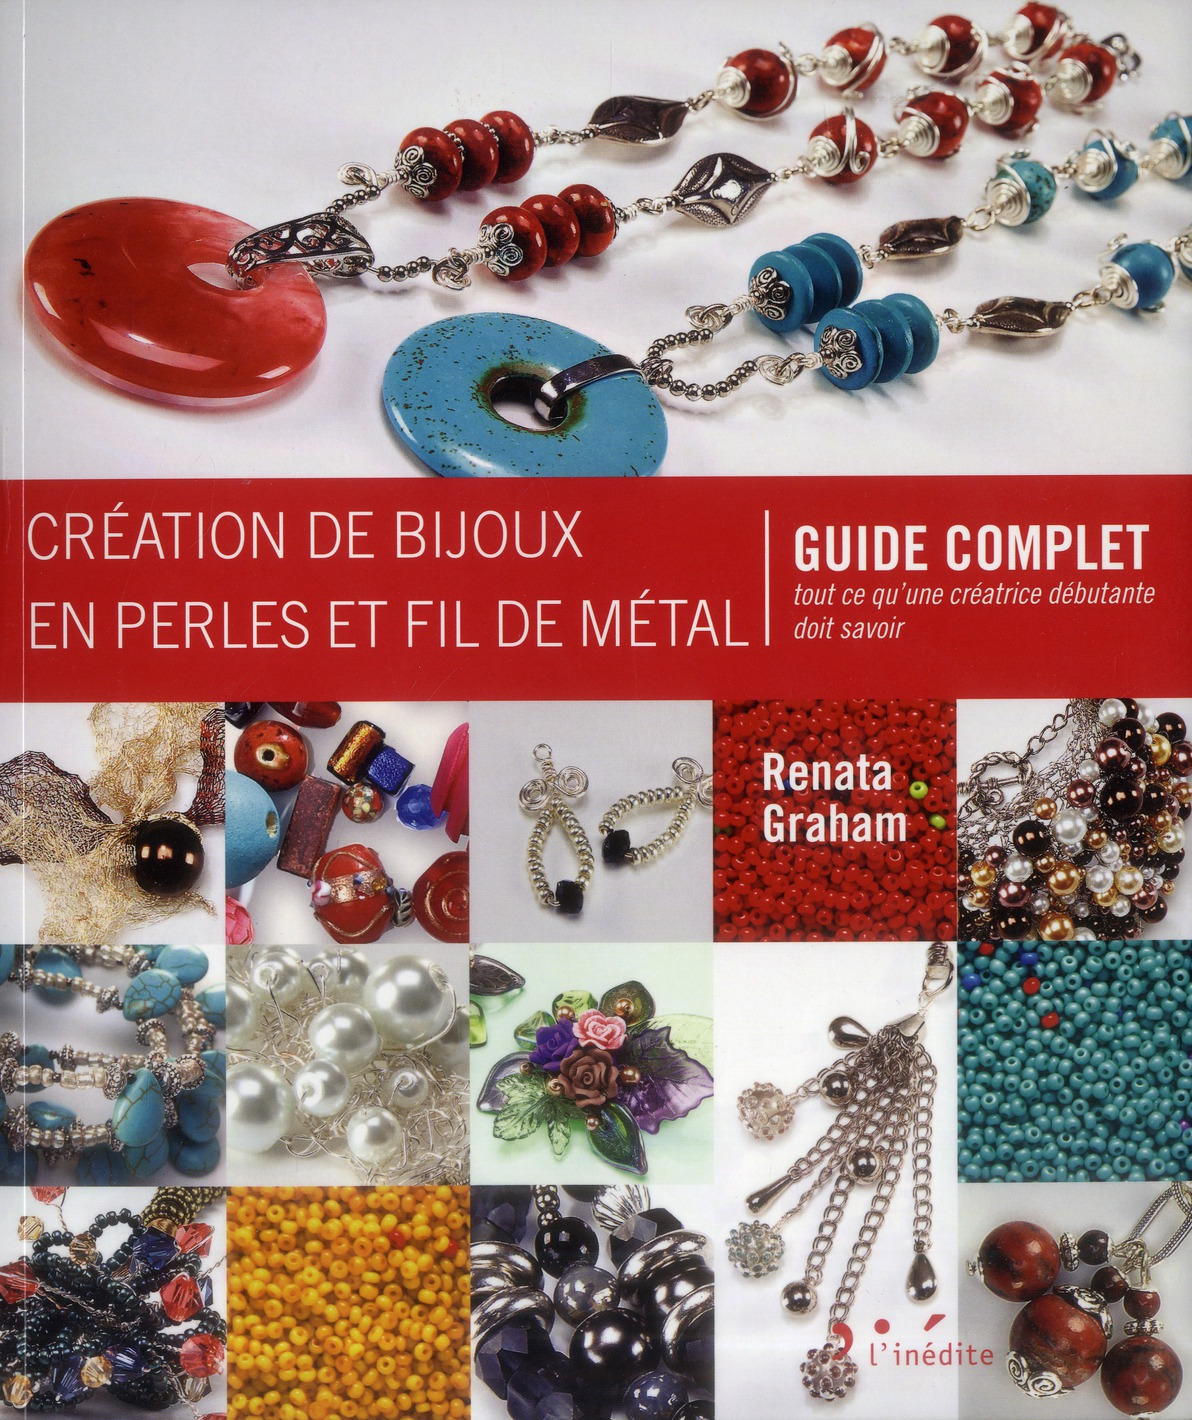 Creation De Bijoux En Perles Et Fil De Metal